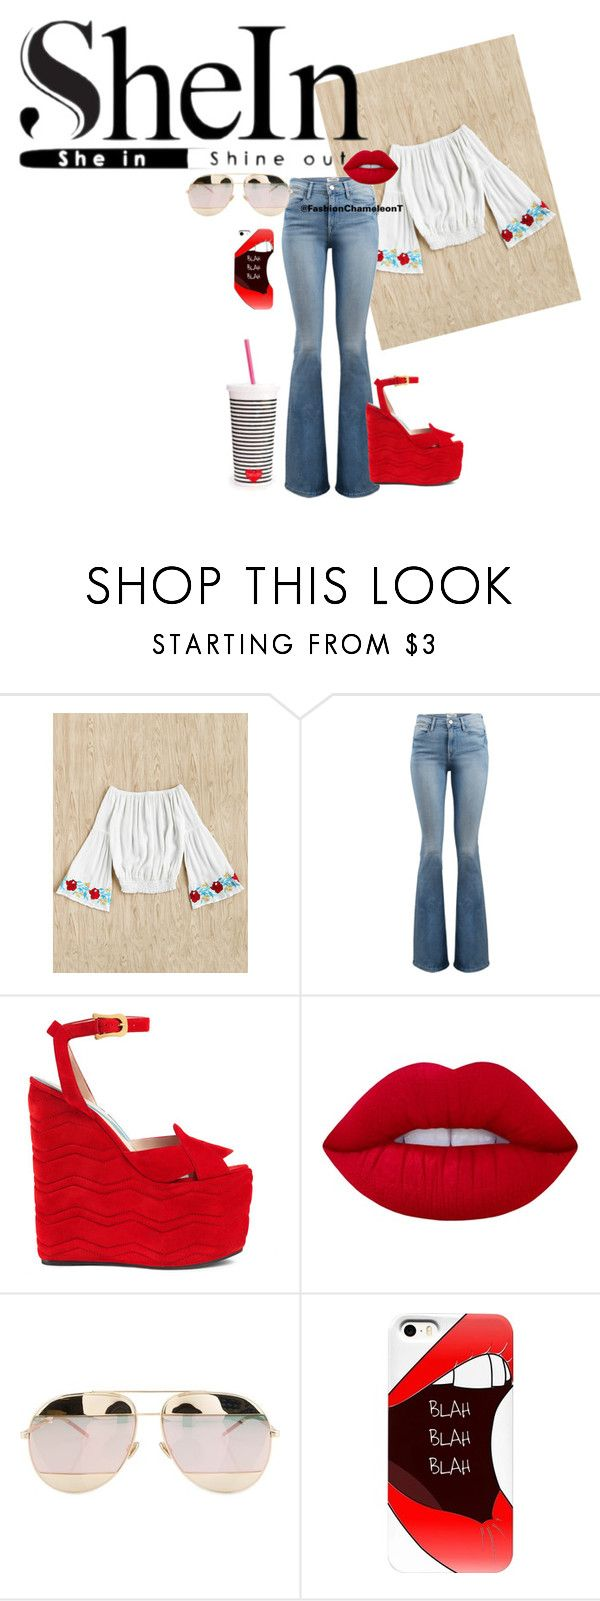 """SHEIN - WIN $30 COUPON CODE"" by fashionchameleont on Polyvore featuring Frame, Gucci, Lime Crime, Christian Dior and ban.do"